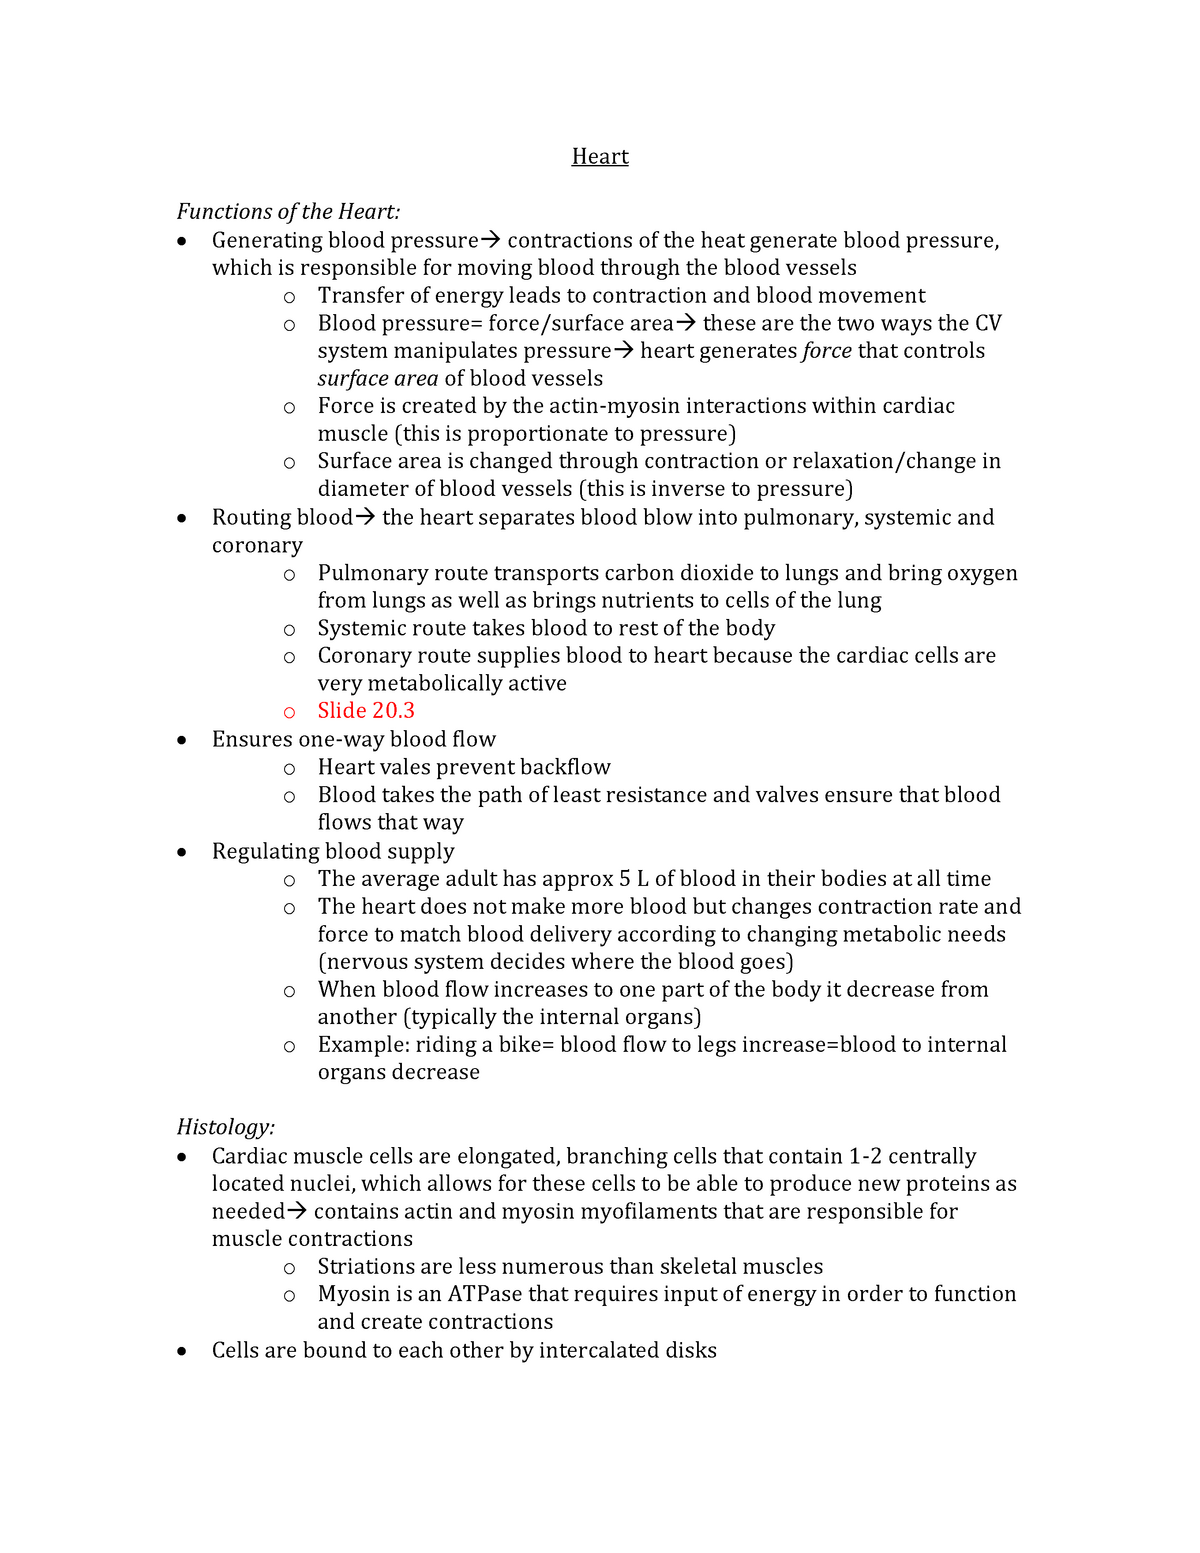 Human Anatomy and Physiology II - Lecture notes - 4  Heart